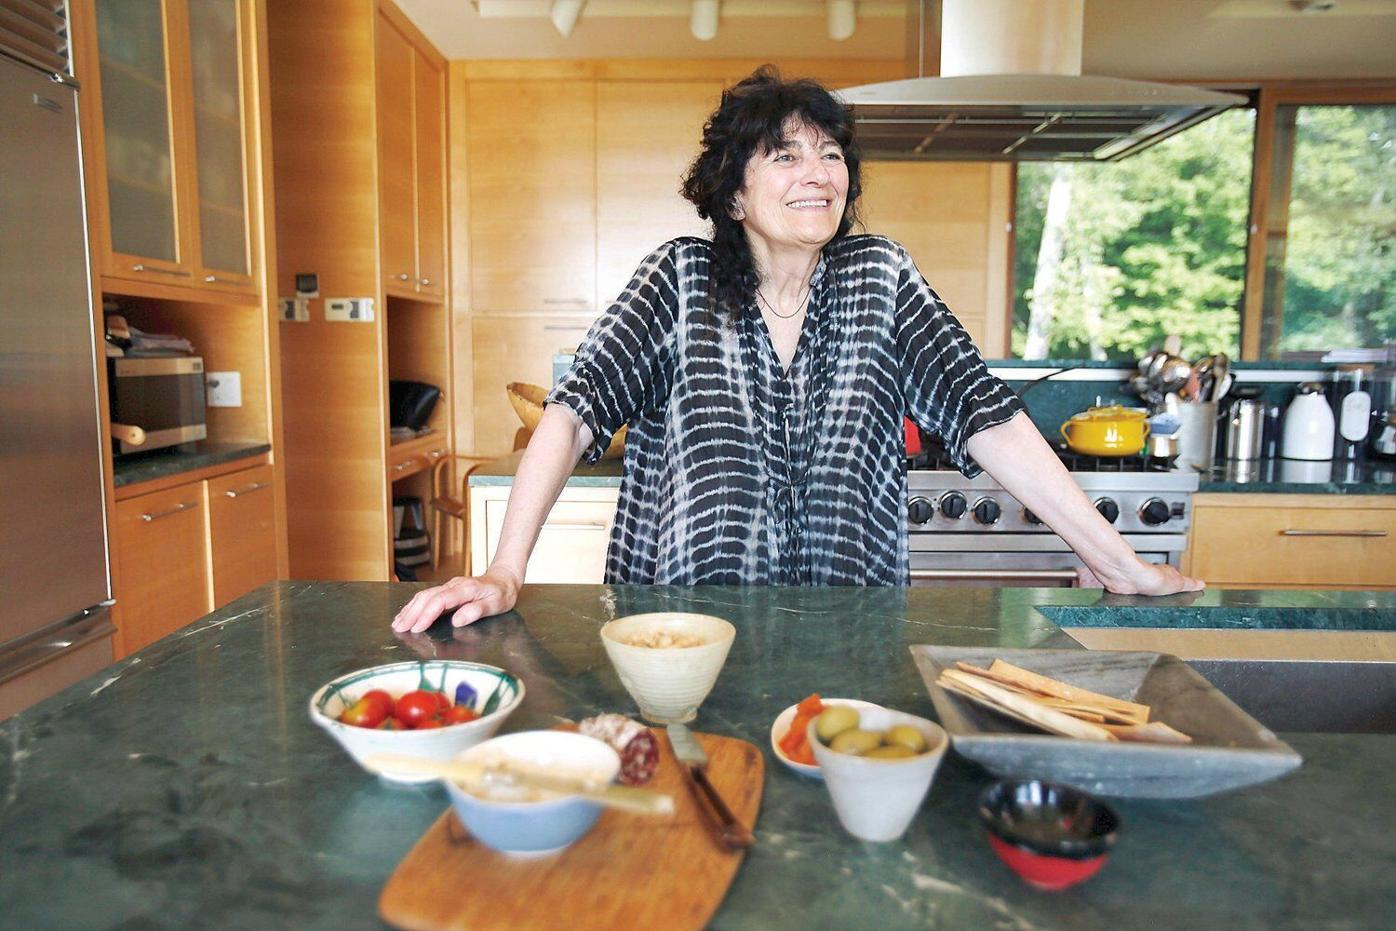 An afternoon in the kitchen with Ruth Reichl